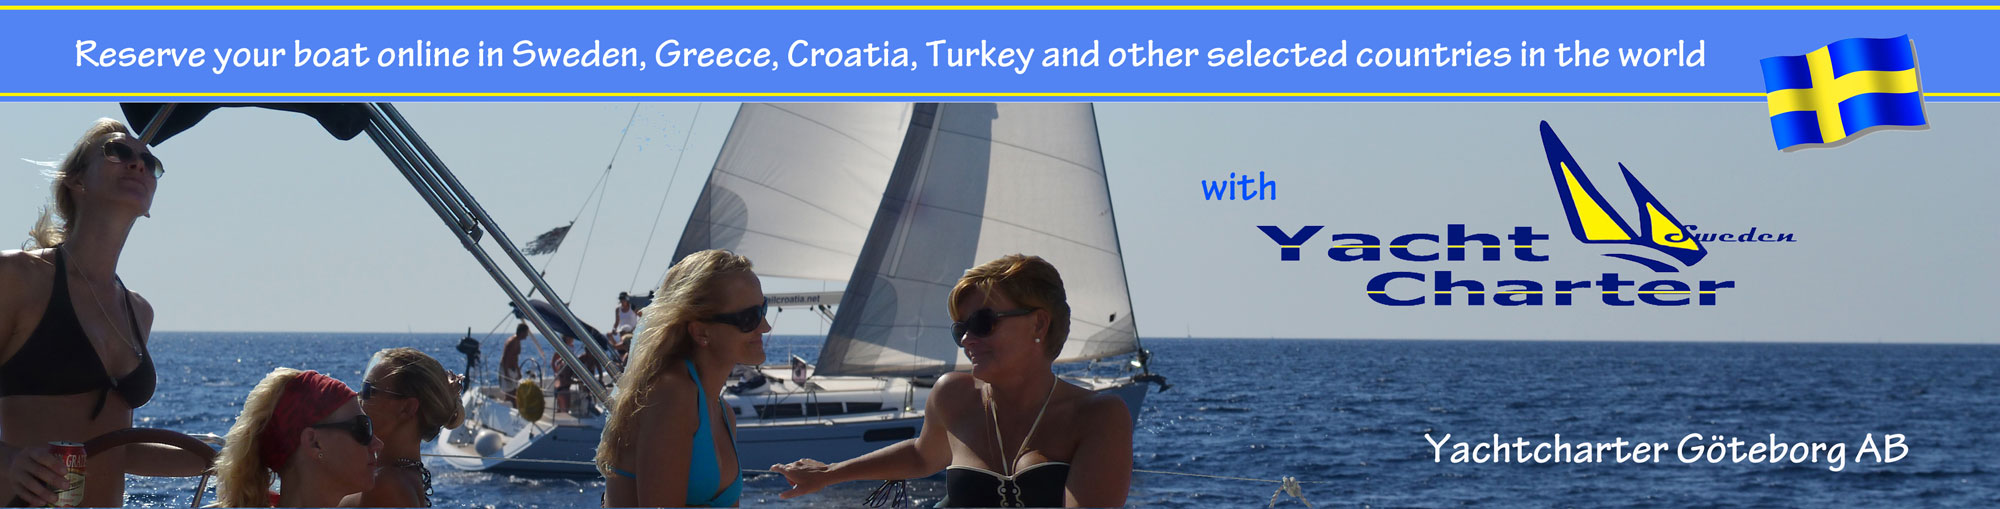 A Scandinavian company for boatcharter world wide. Welcome to sail with us.